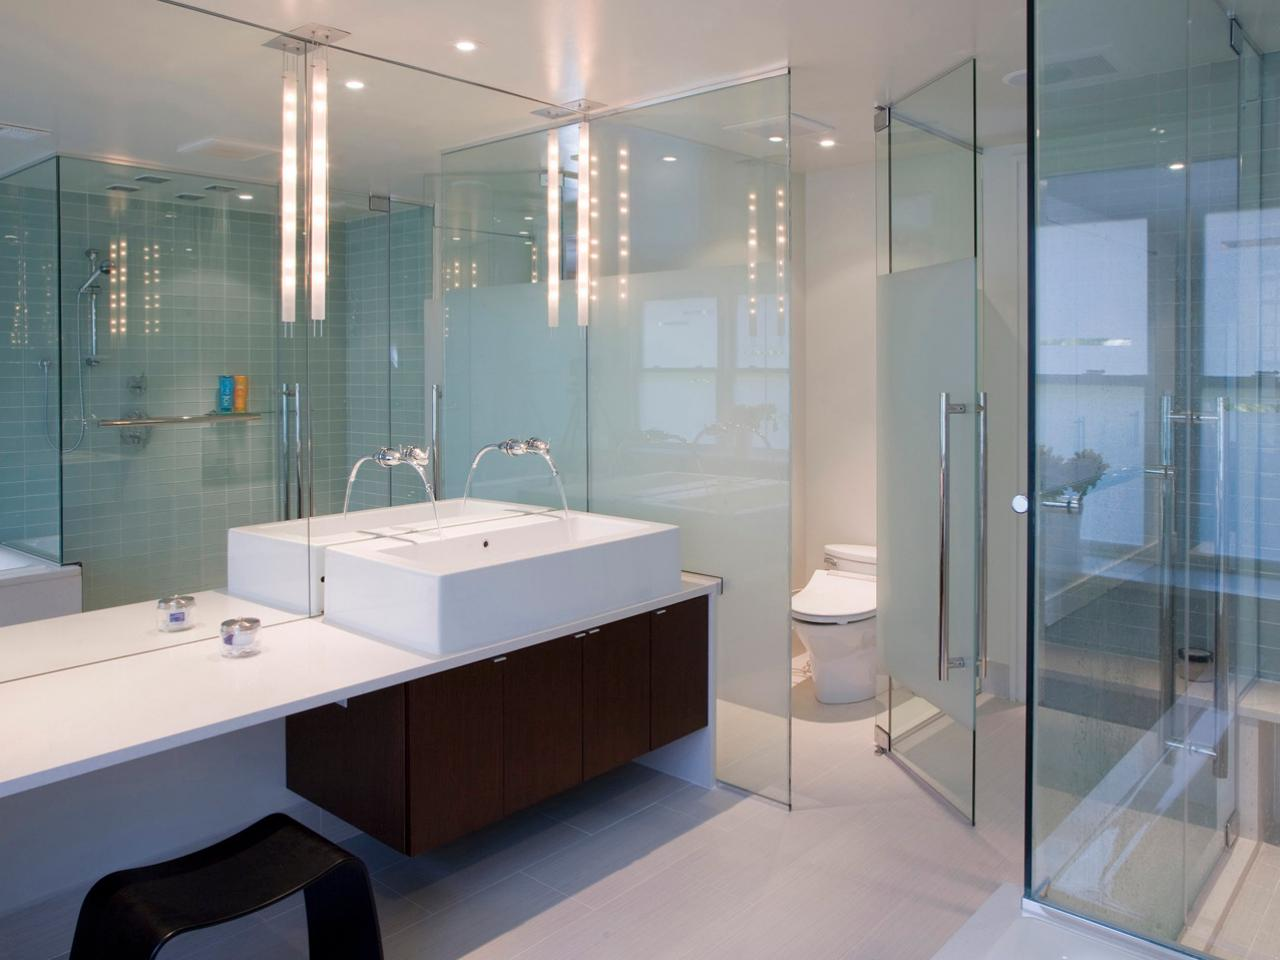 Fiberglass Showers And Glass Doors Part 59